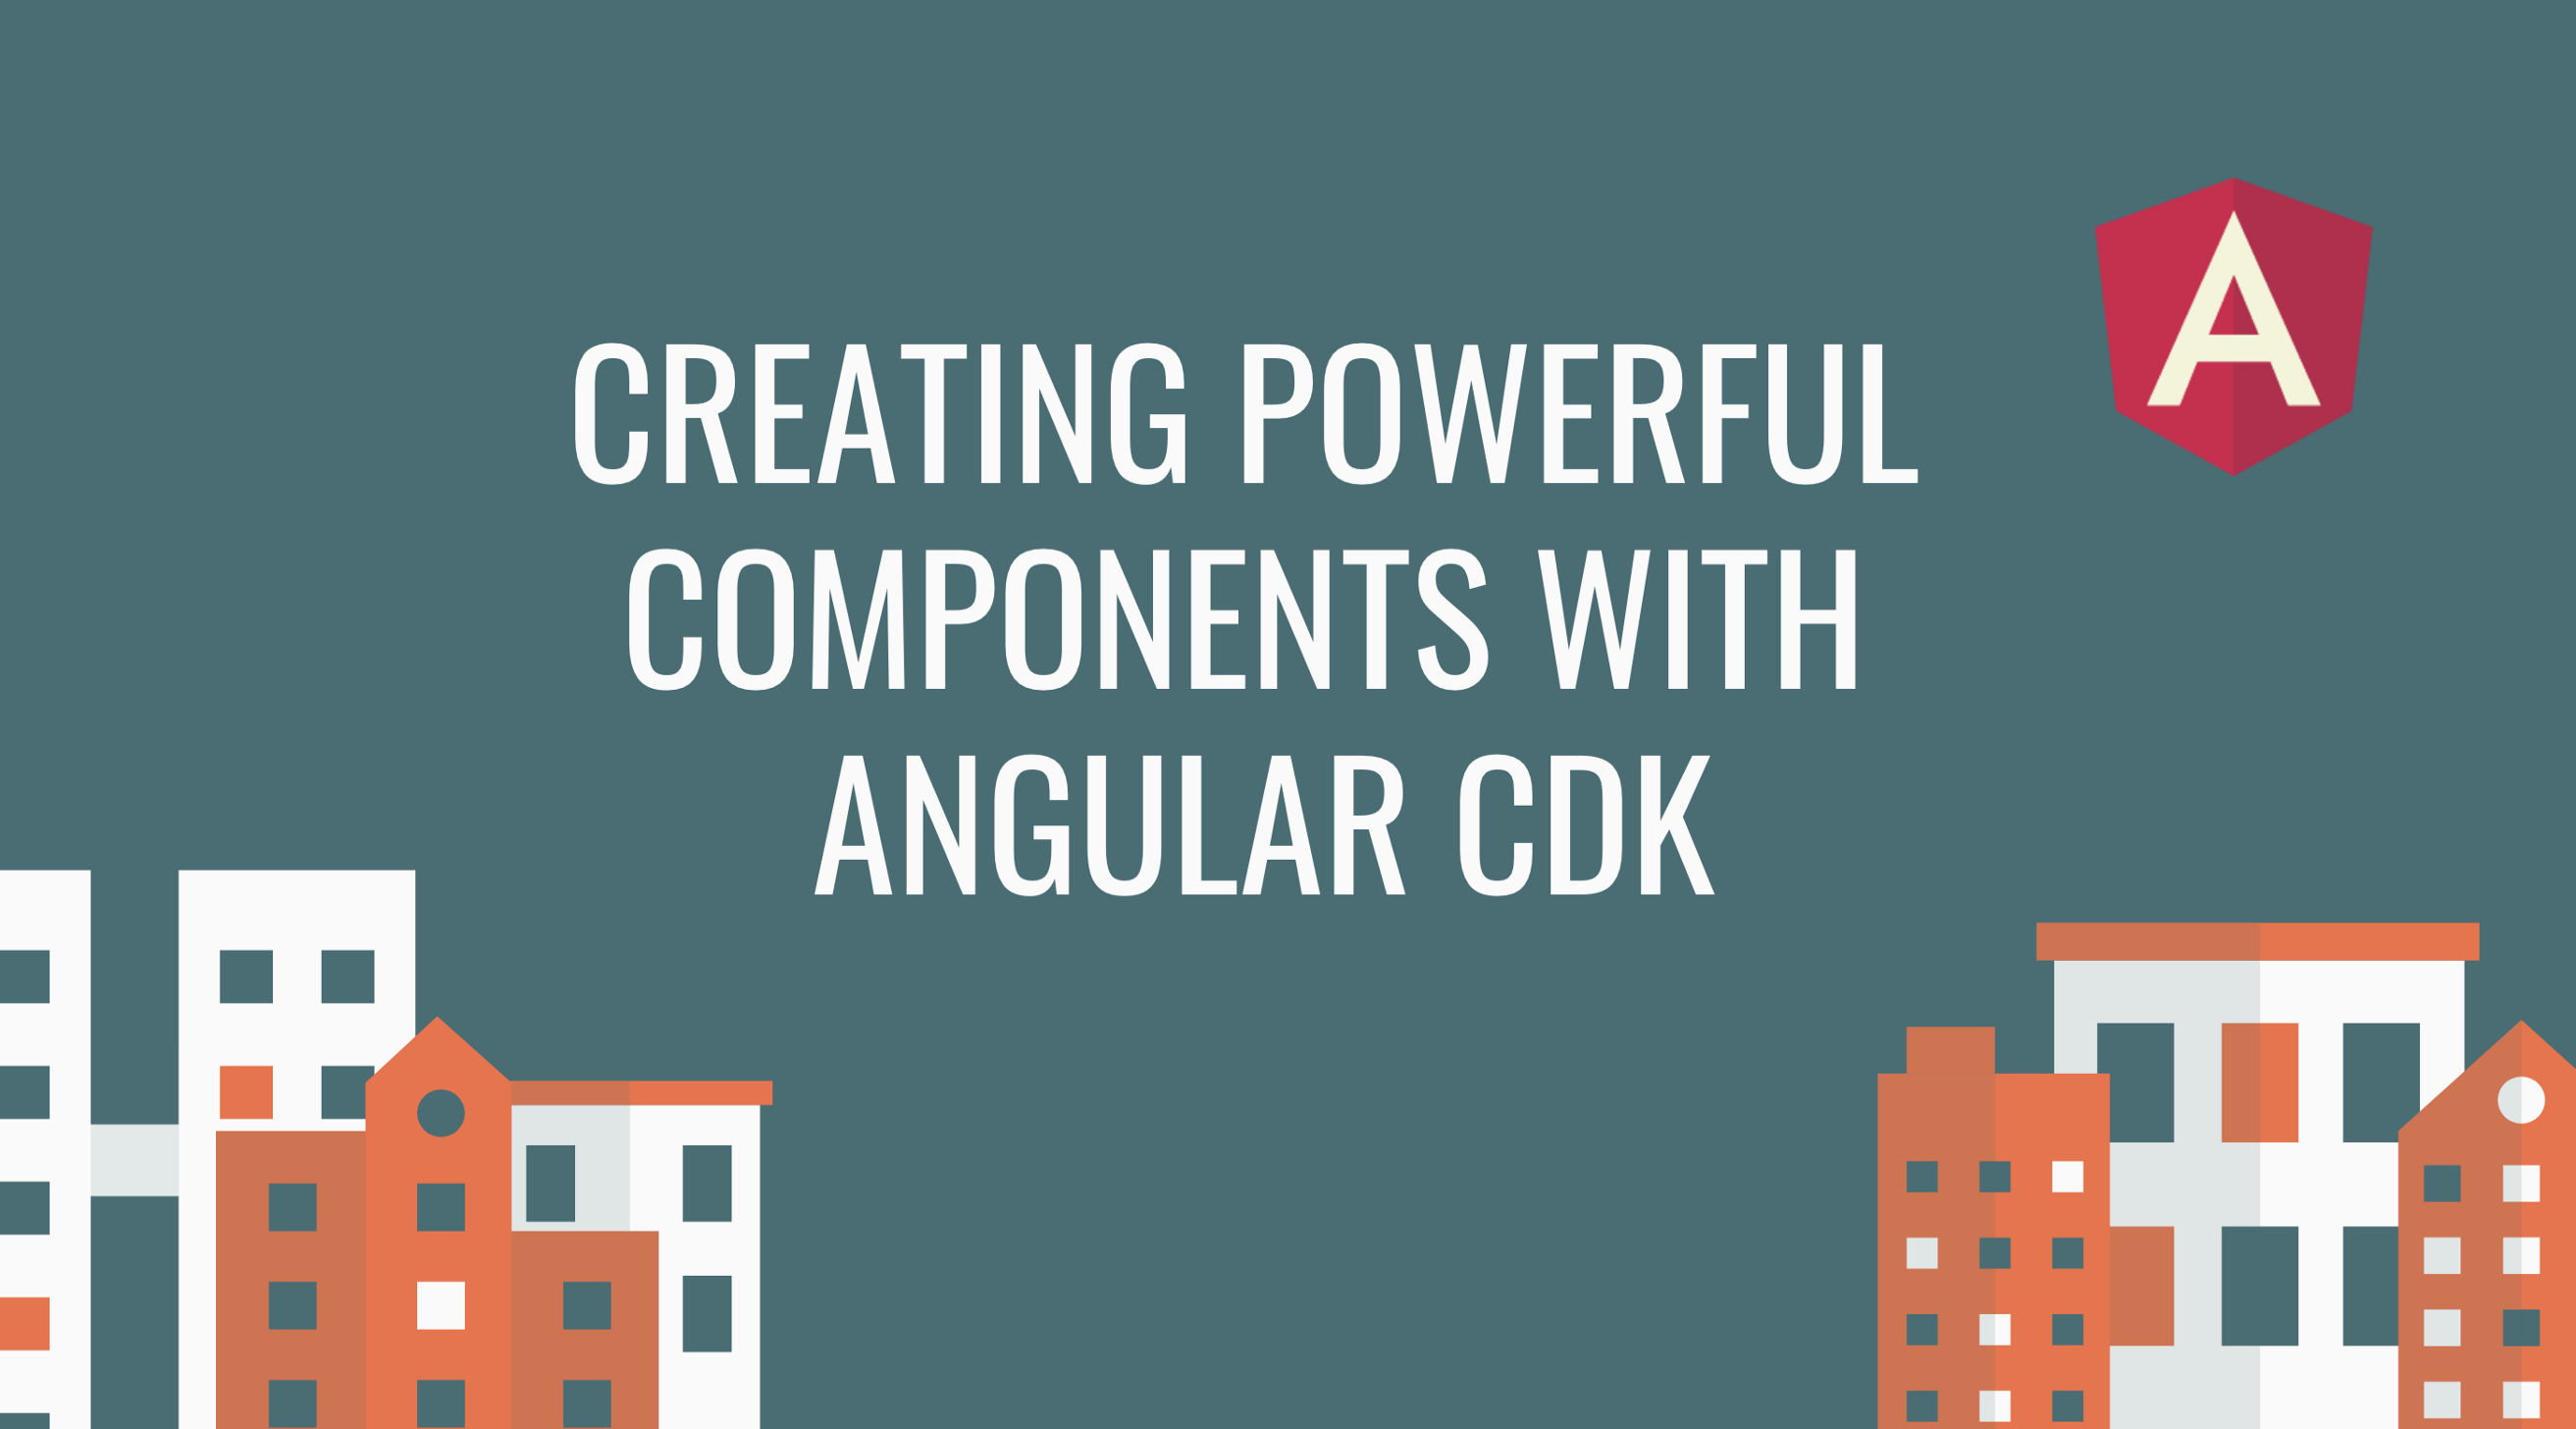 Creating Powerful Components with Angular CDK - Netanel Basal